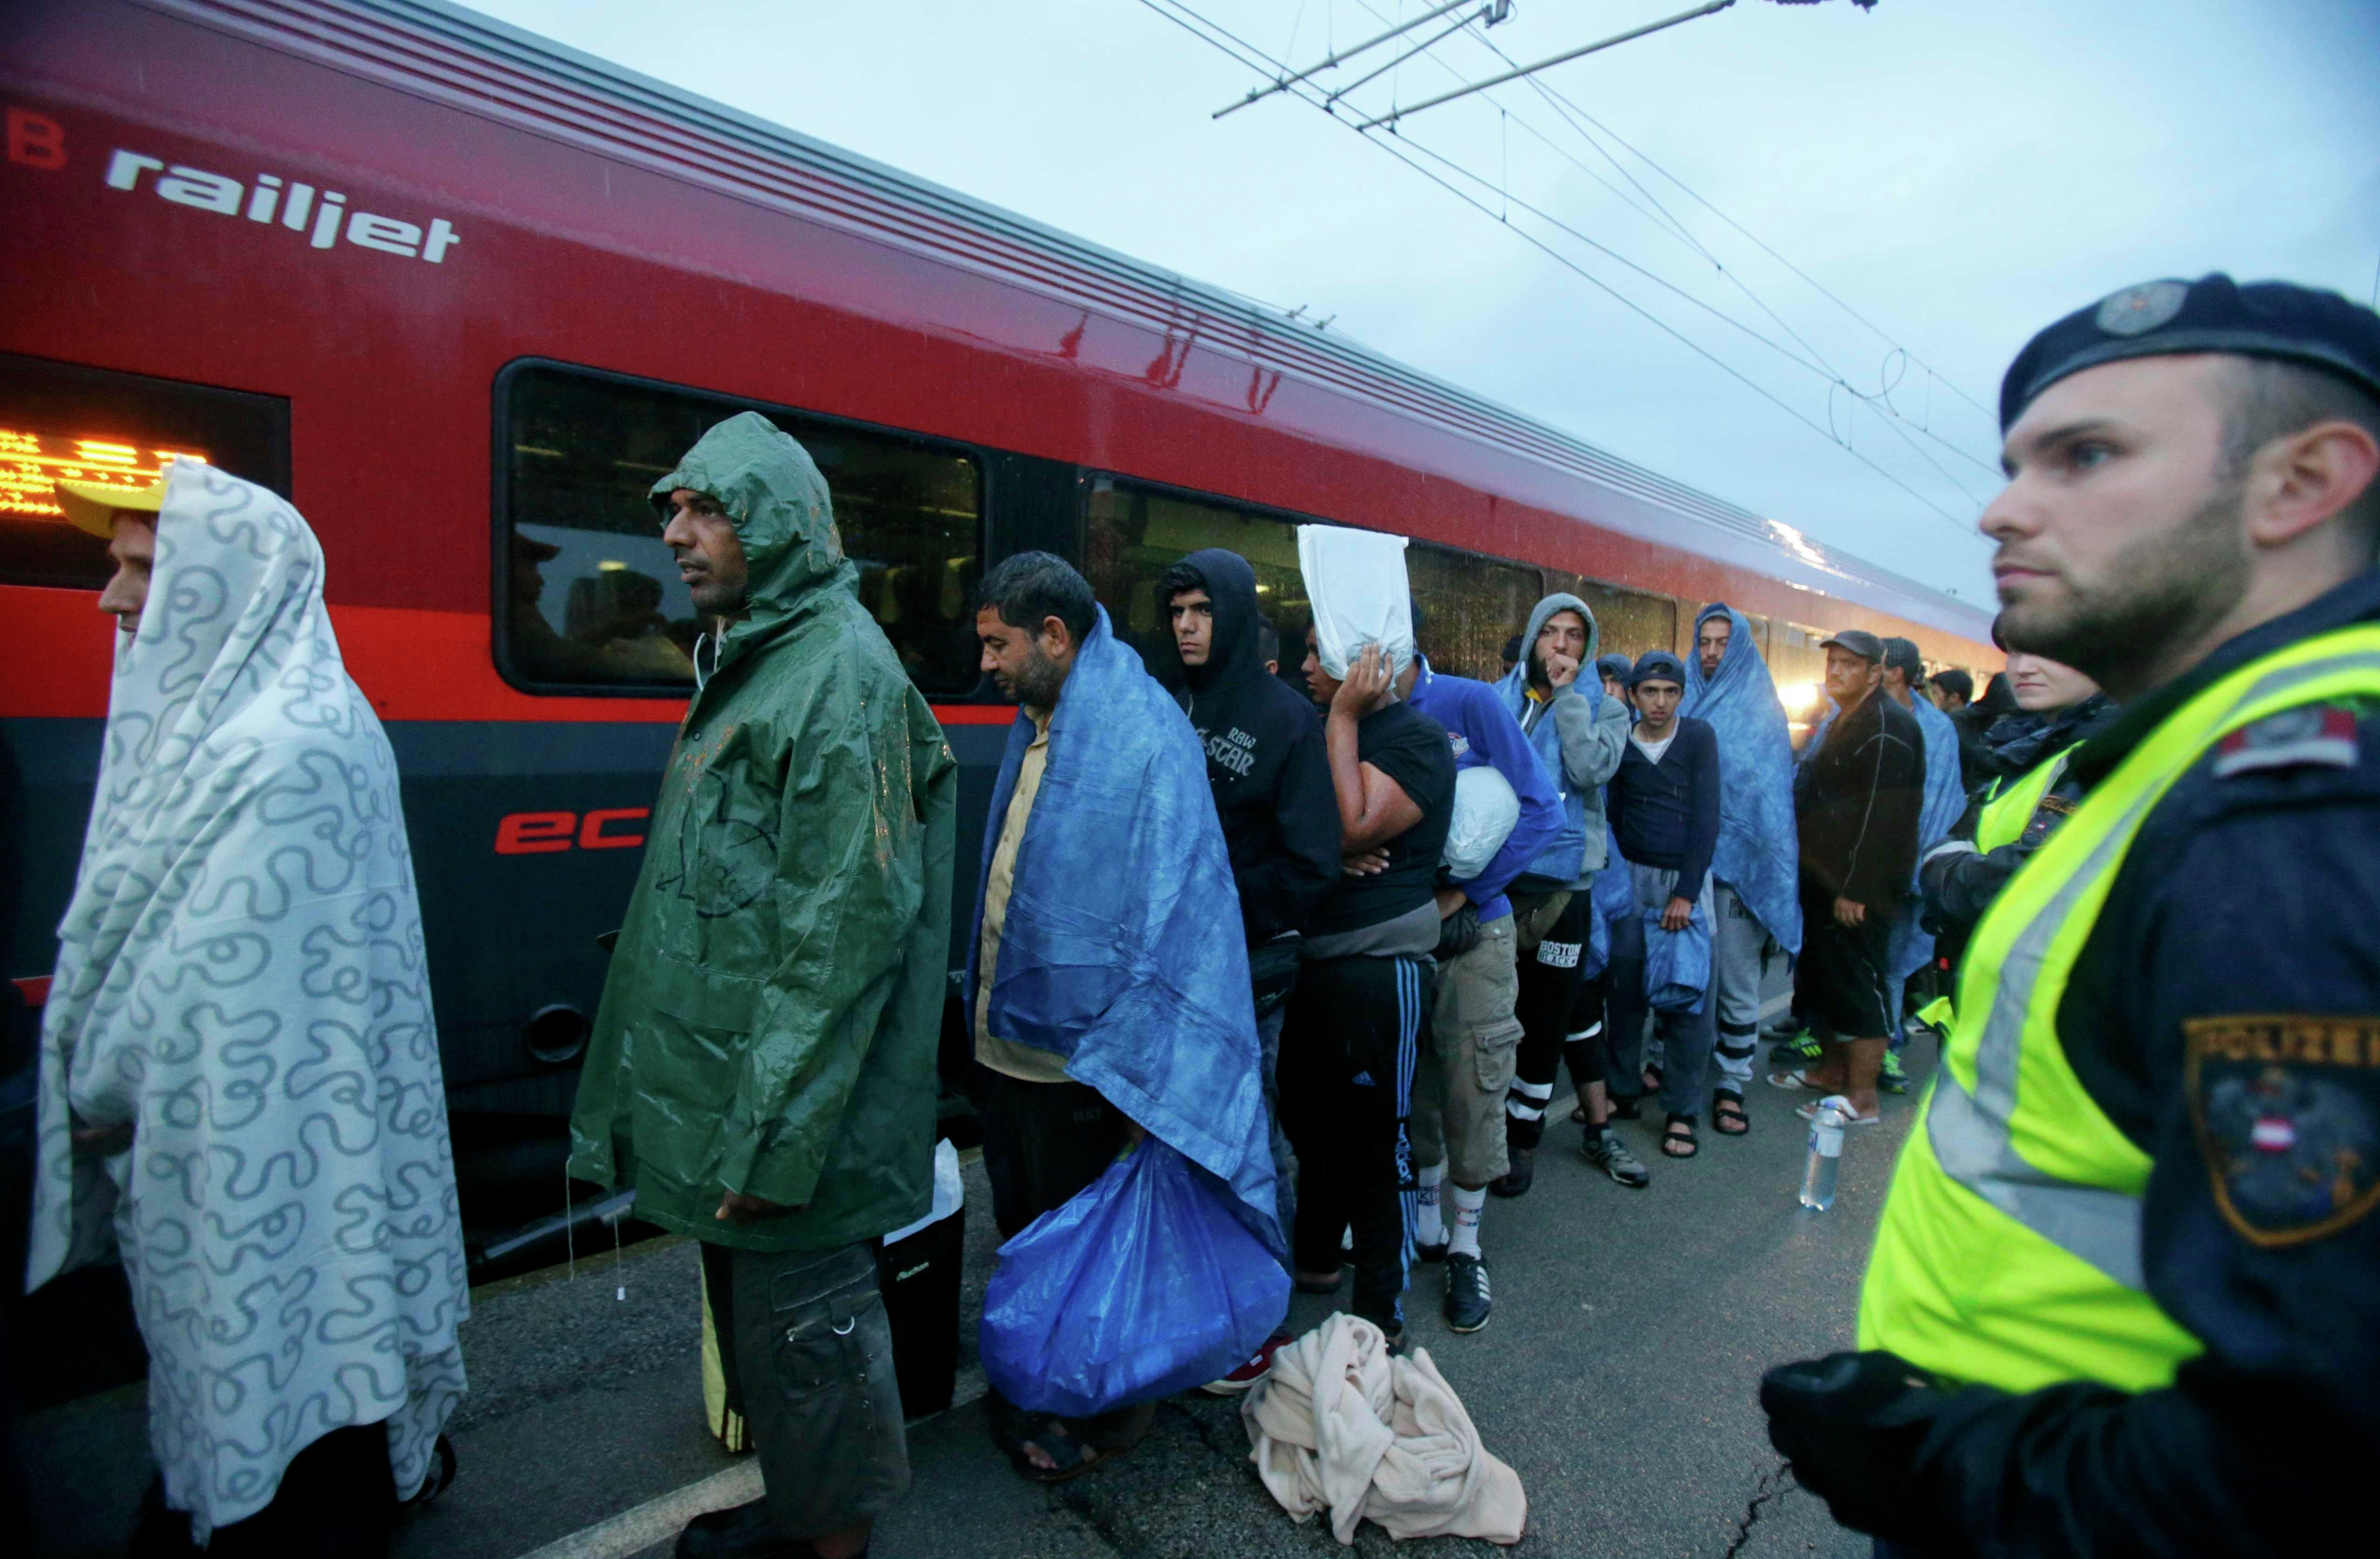 Migrants board a train to Germany at the Austrian train station of Nickelsdorf, September 5, 2015